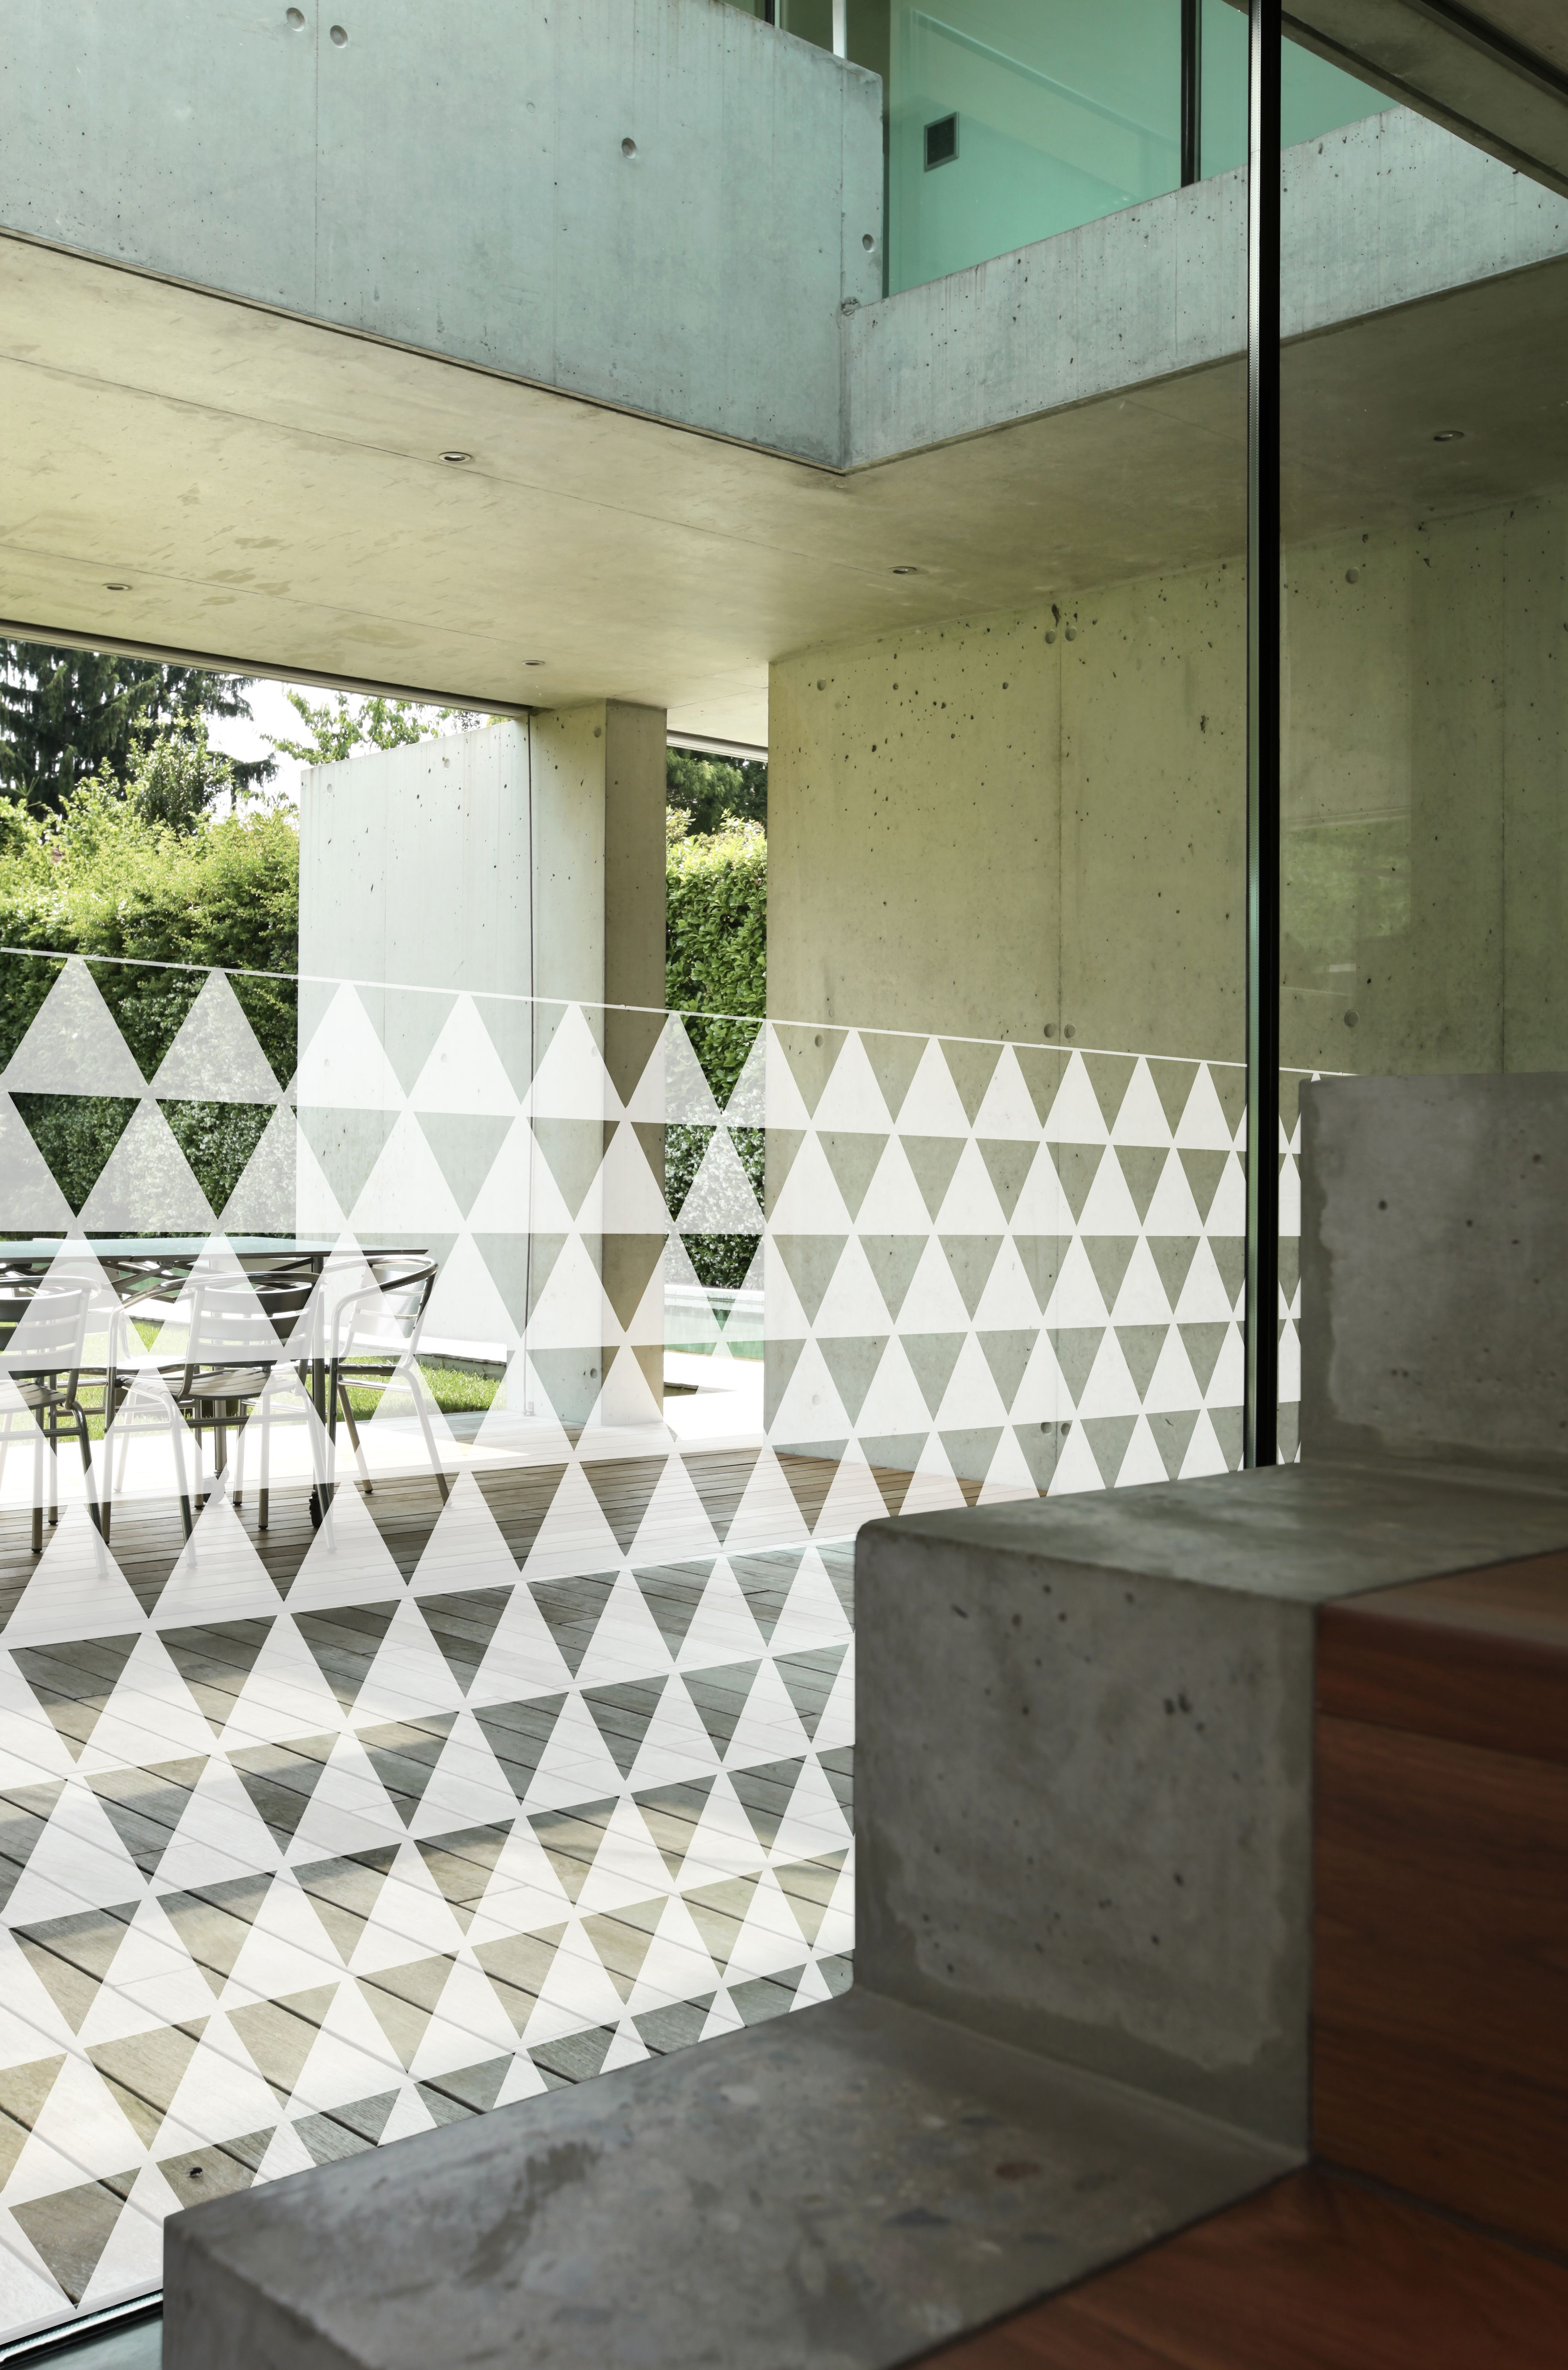 Follow Tint A Car On Pinterest Pin Your Favourite Decorative Film To One Of Your Boards Office Interior Design Glass Film Design Glass Doors Interior [ jpg ]